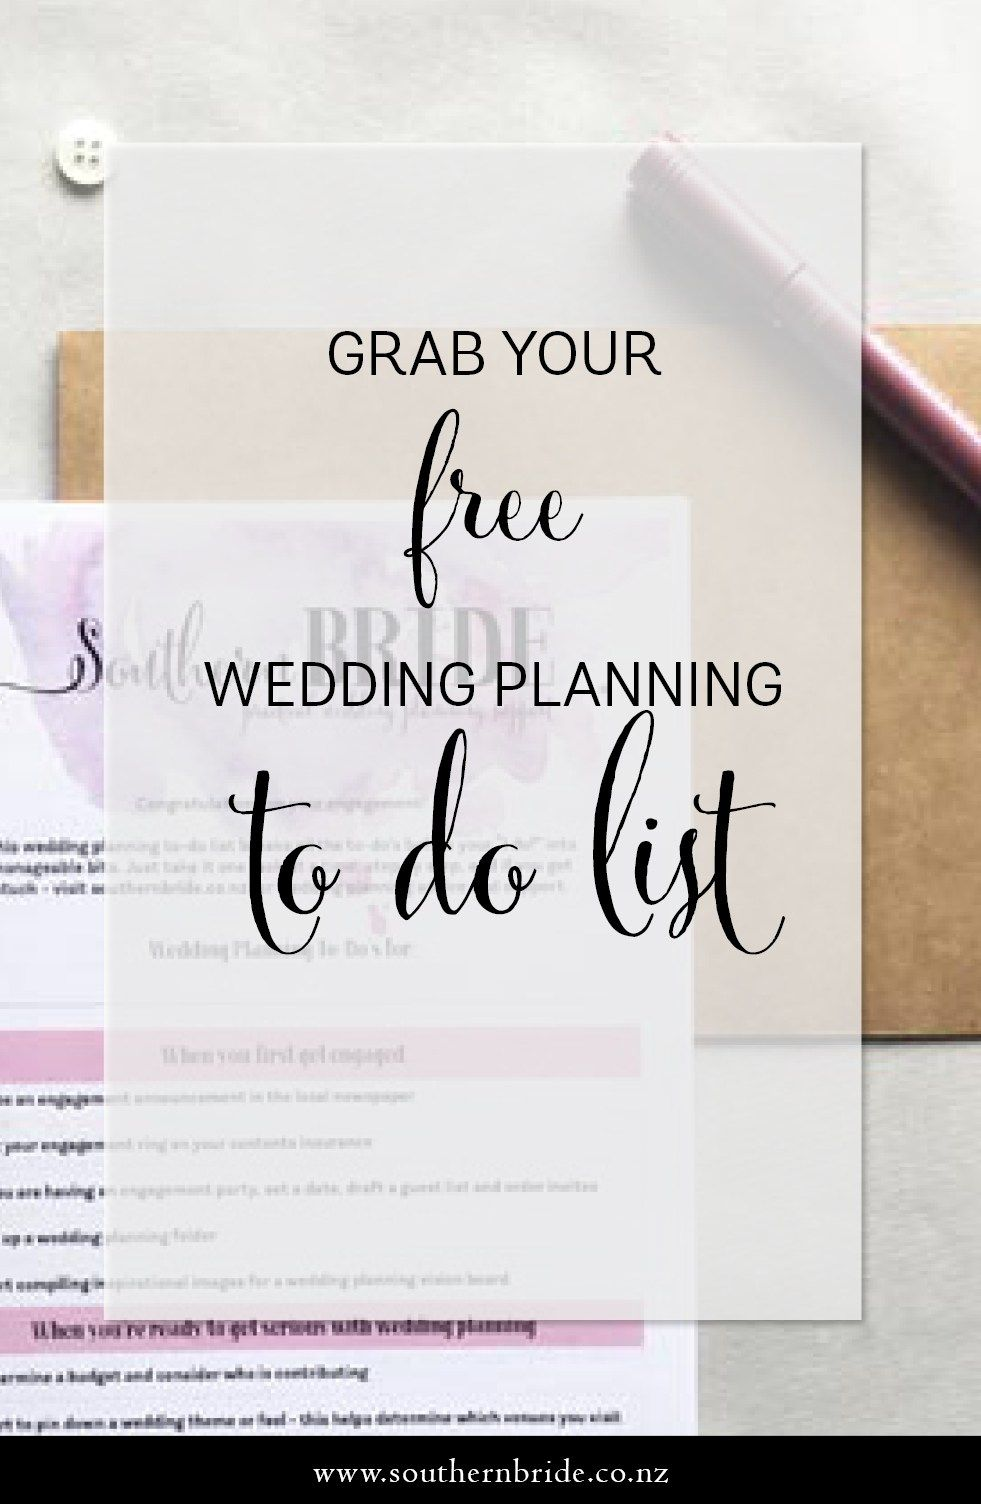 download a free wedding planning to do list to help make your wedding planning stress